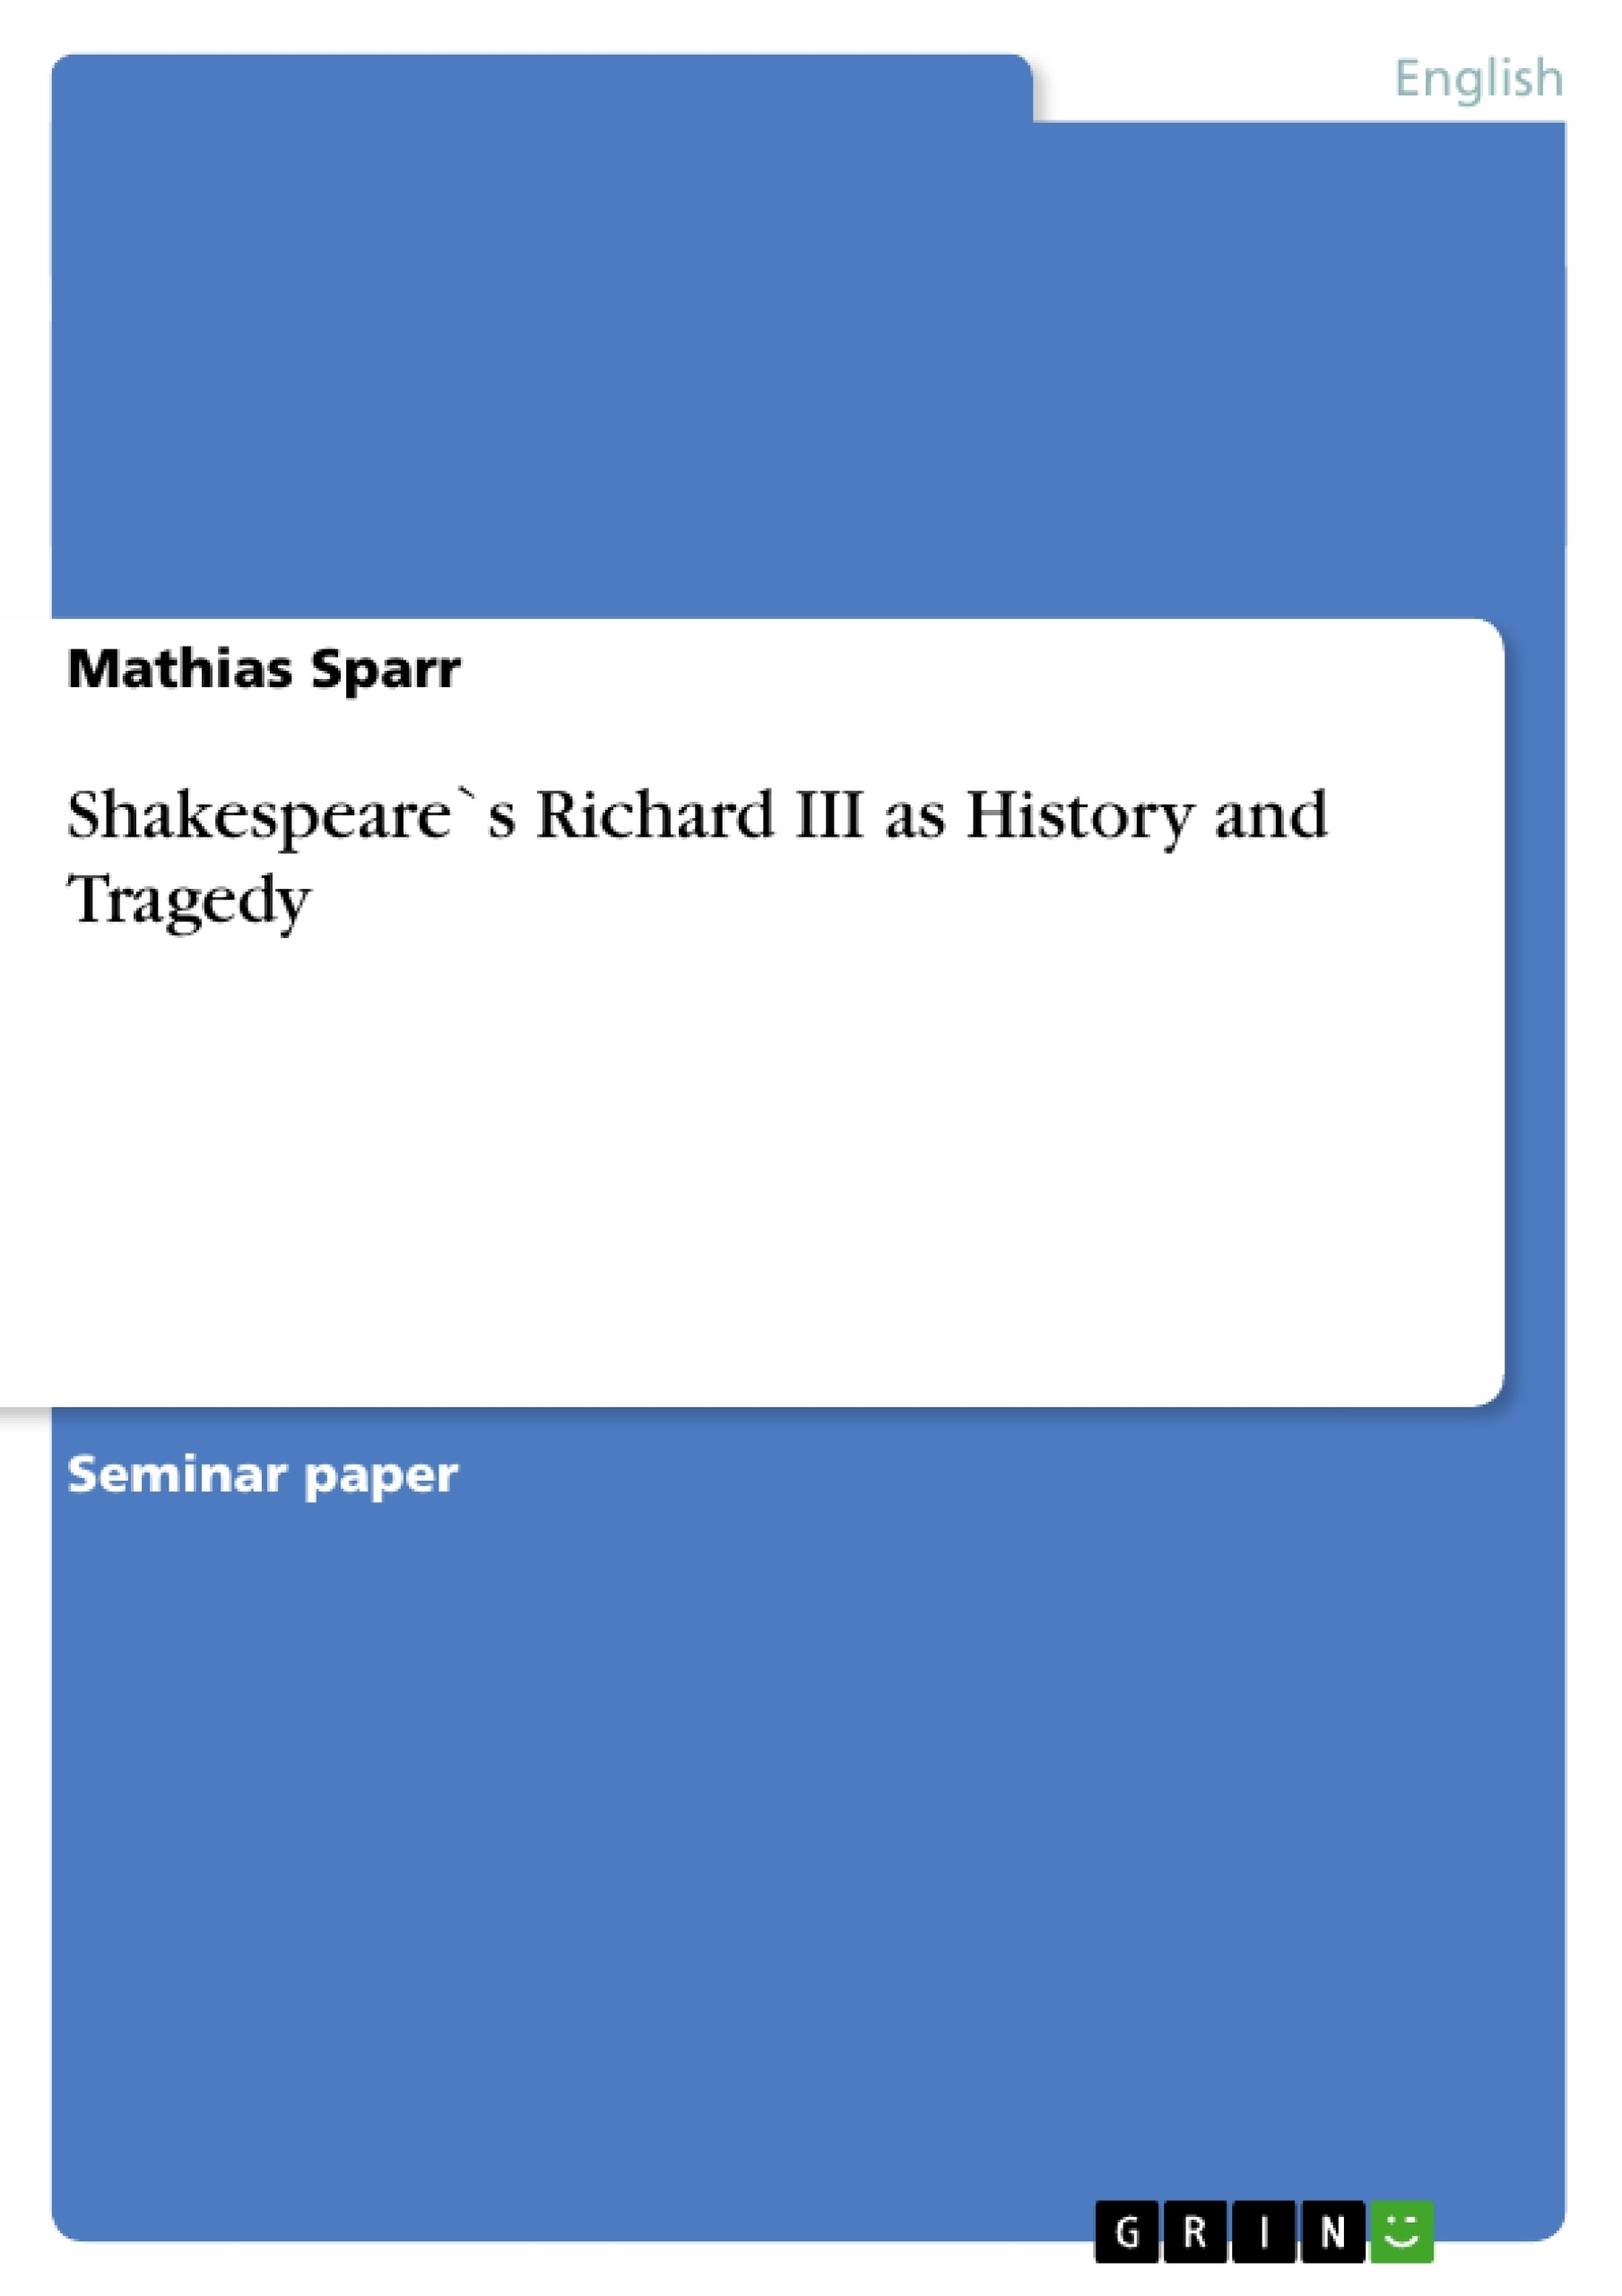 tragedy essay romeo and juliet essay fate fate in romeo and juliet  shakespeare`s richard iii as history and tragedy publish your shakespeare`s richard iii